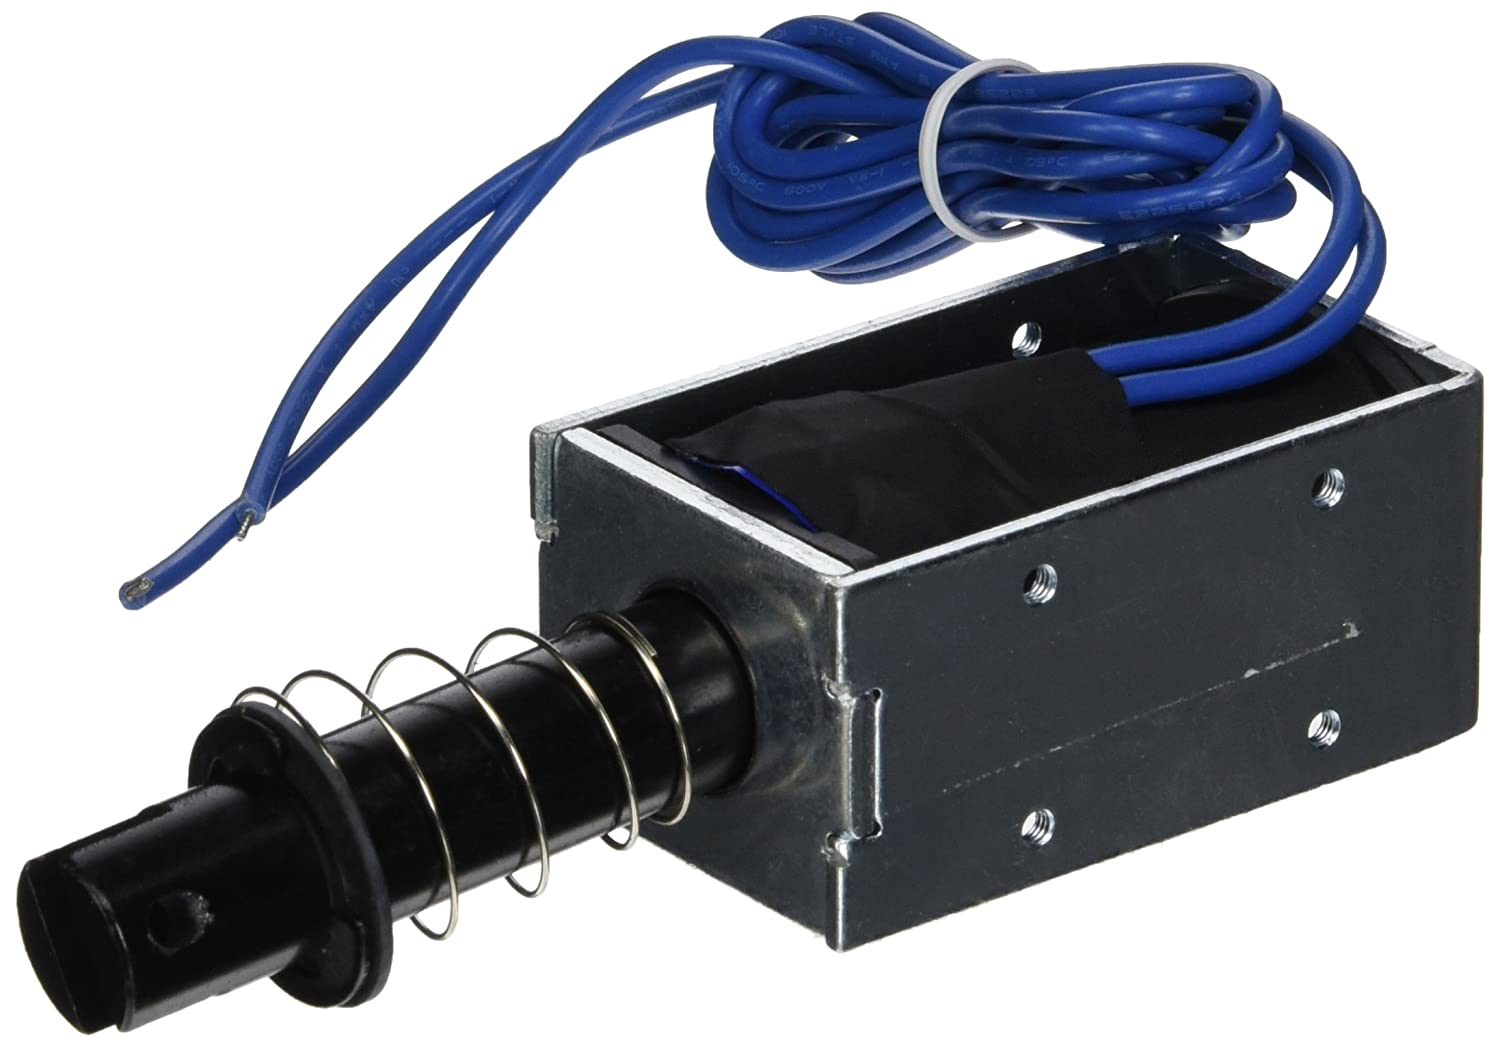 10  mm 2000  g 15  mm 1000  G 2-Wired marco abierto solenoide electroimá n DC24  V Sourcingmap a14042100ux0399